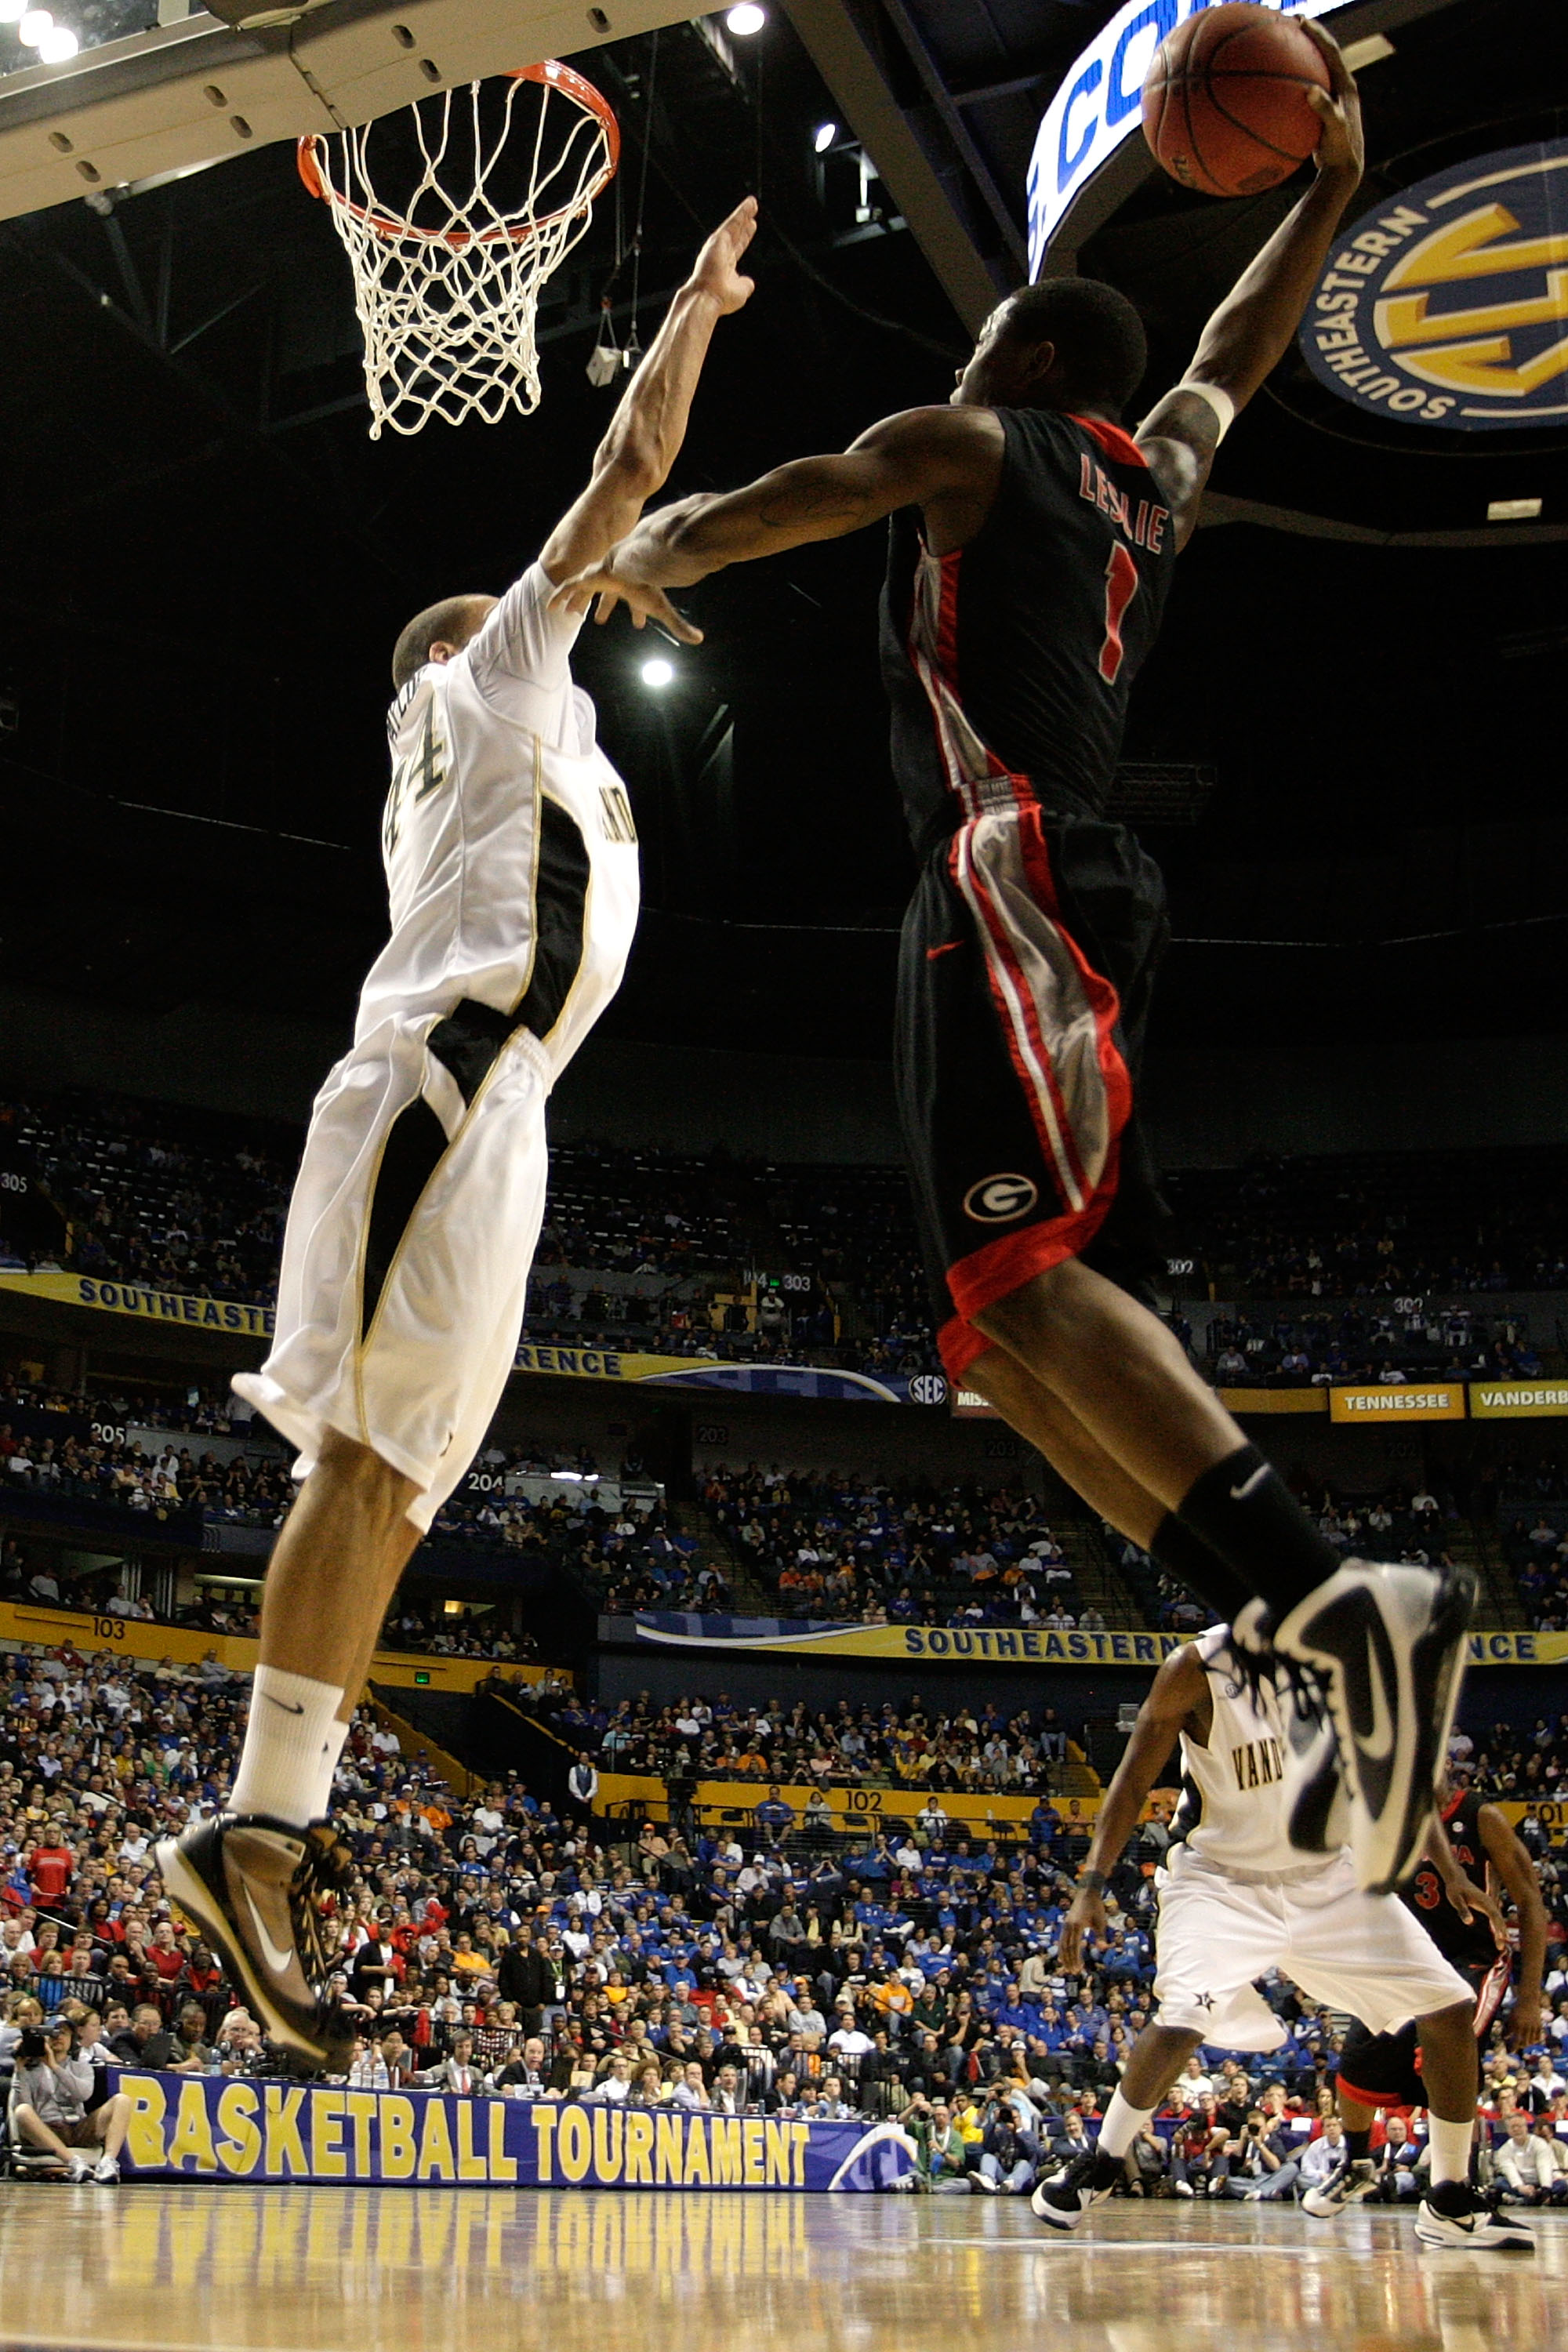 NASHVILLE, TN - MARCH 12:  Travis Leslie #1 of the the Georgia Bulldogs attempts a shot against Jeffery Taylor #44 of the Vanderbilt Commodores during the quarterfinals of the SEC Men's Basketball Tournament at the Bridgestone Arena on March 12, 2010 in N